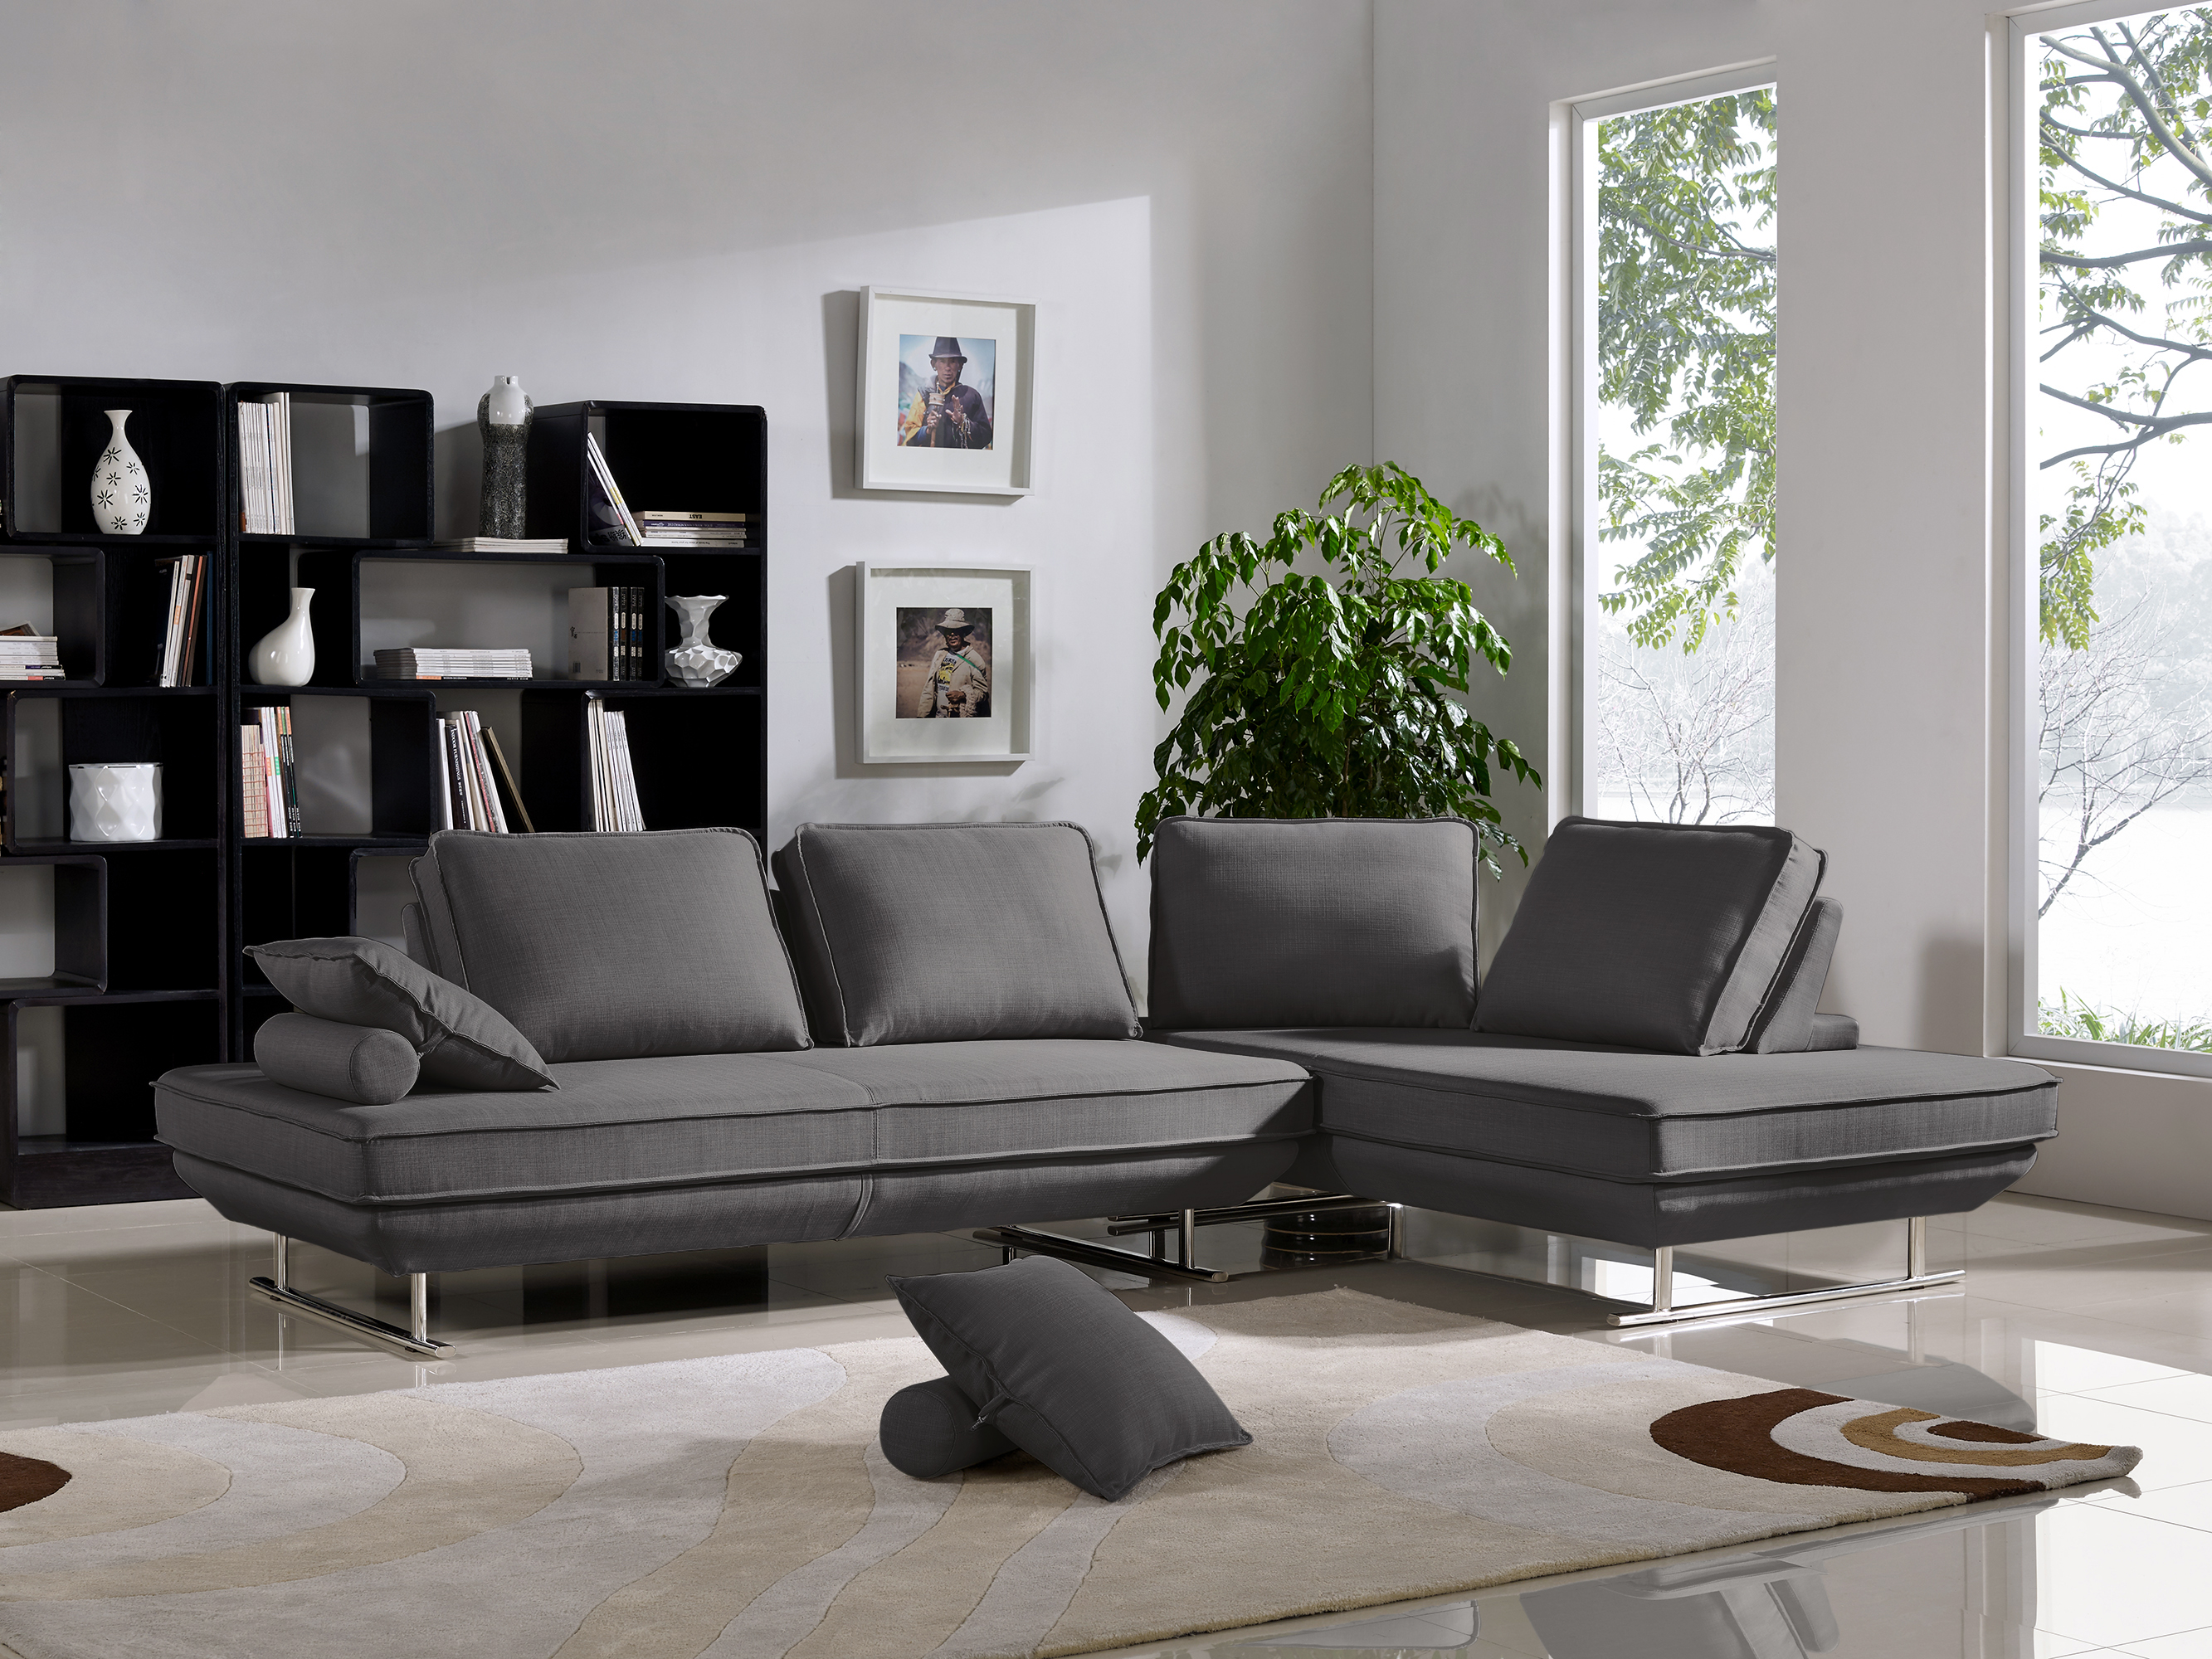 Dolce Living Room Collection Las Vegas Furniture Store Modern Home Furniture Cornerstone